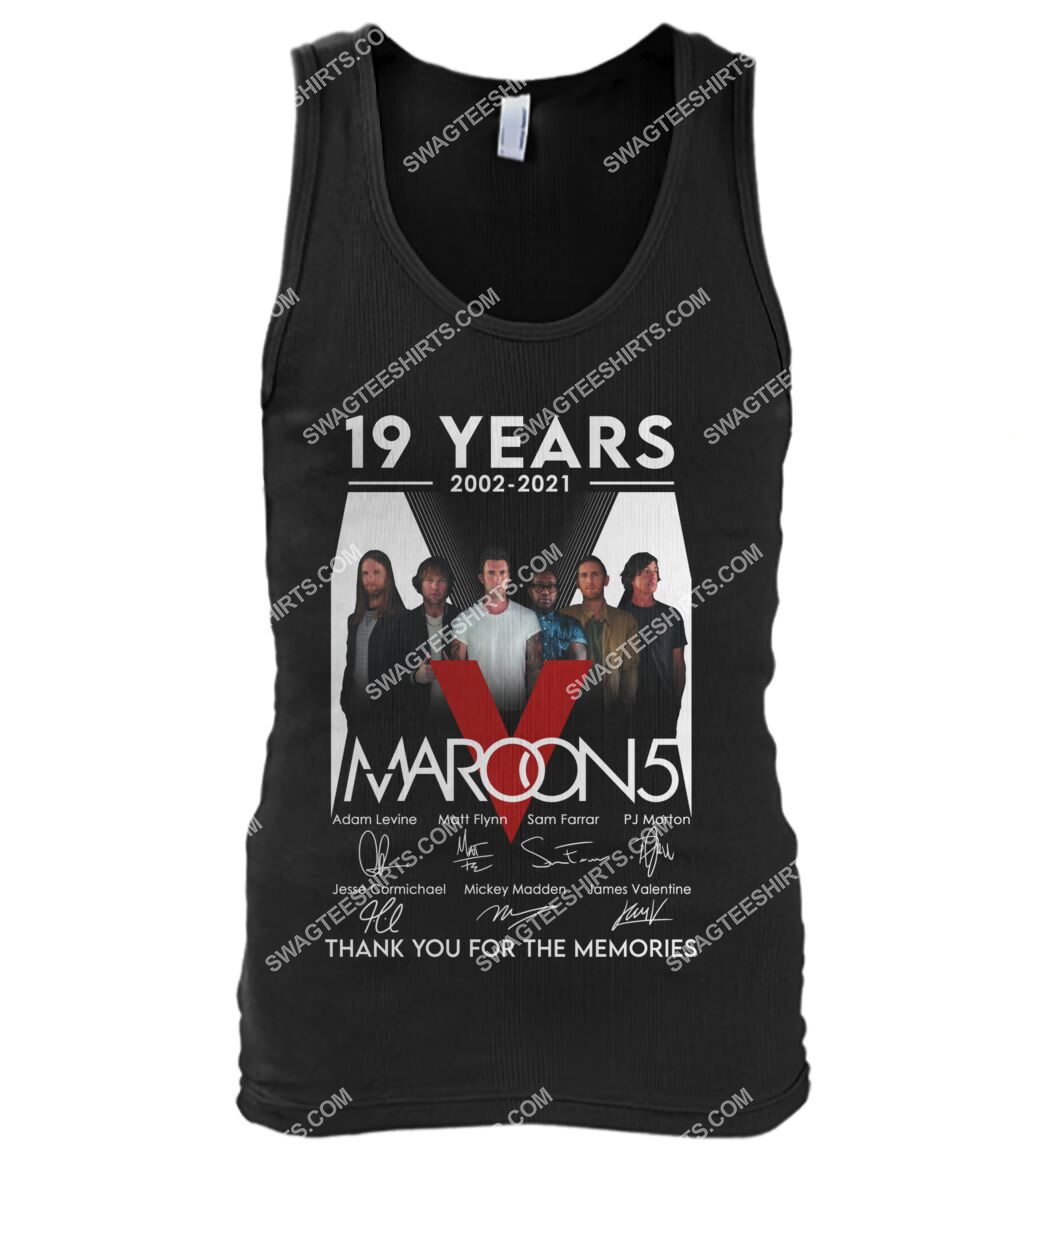 maroon 5 19 years thank you for memories signature tank top 1